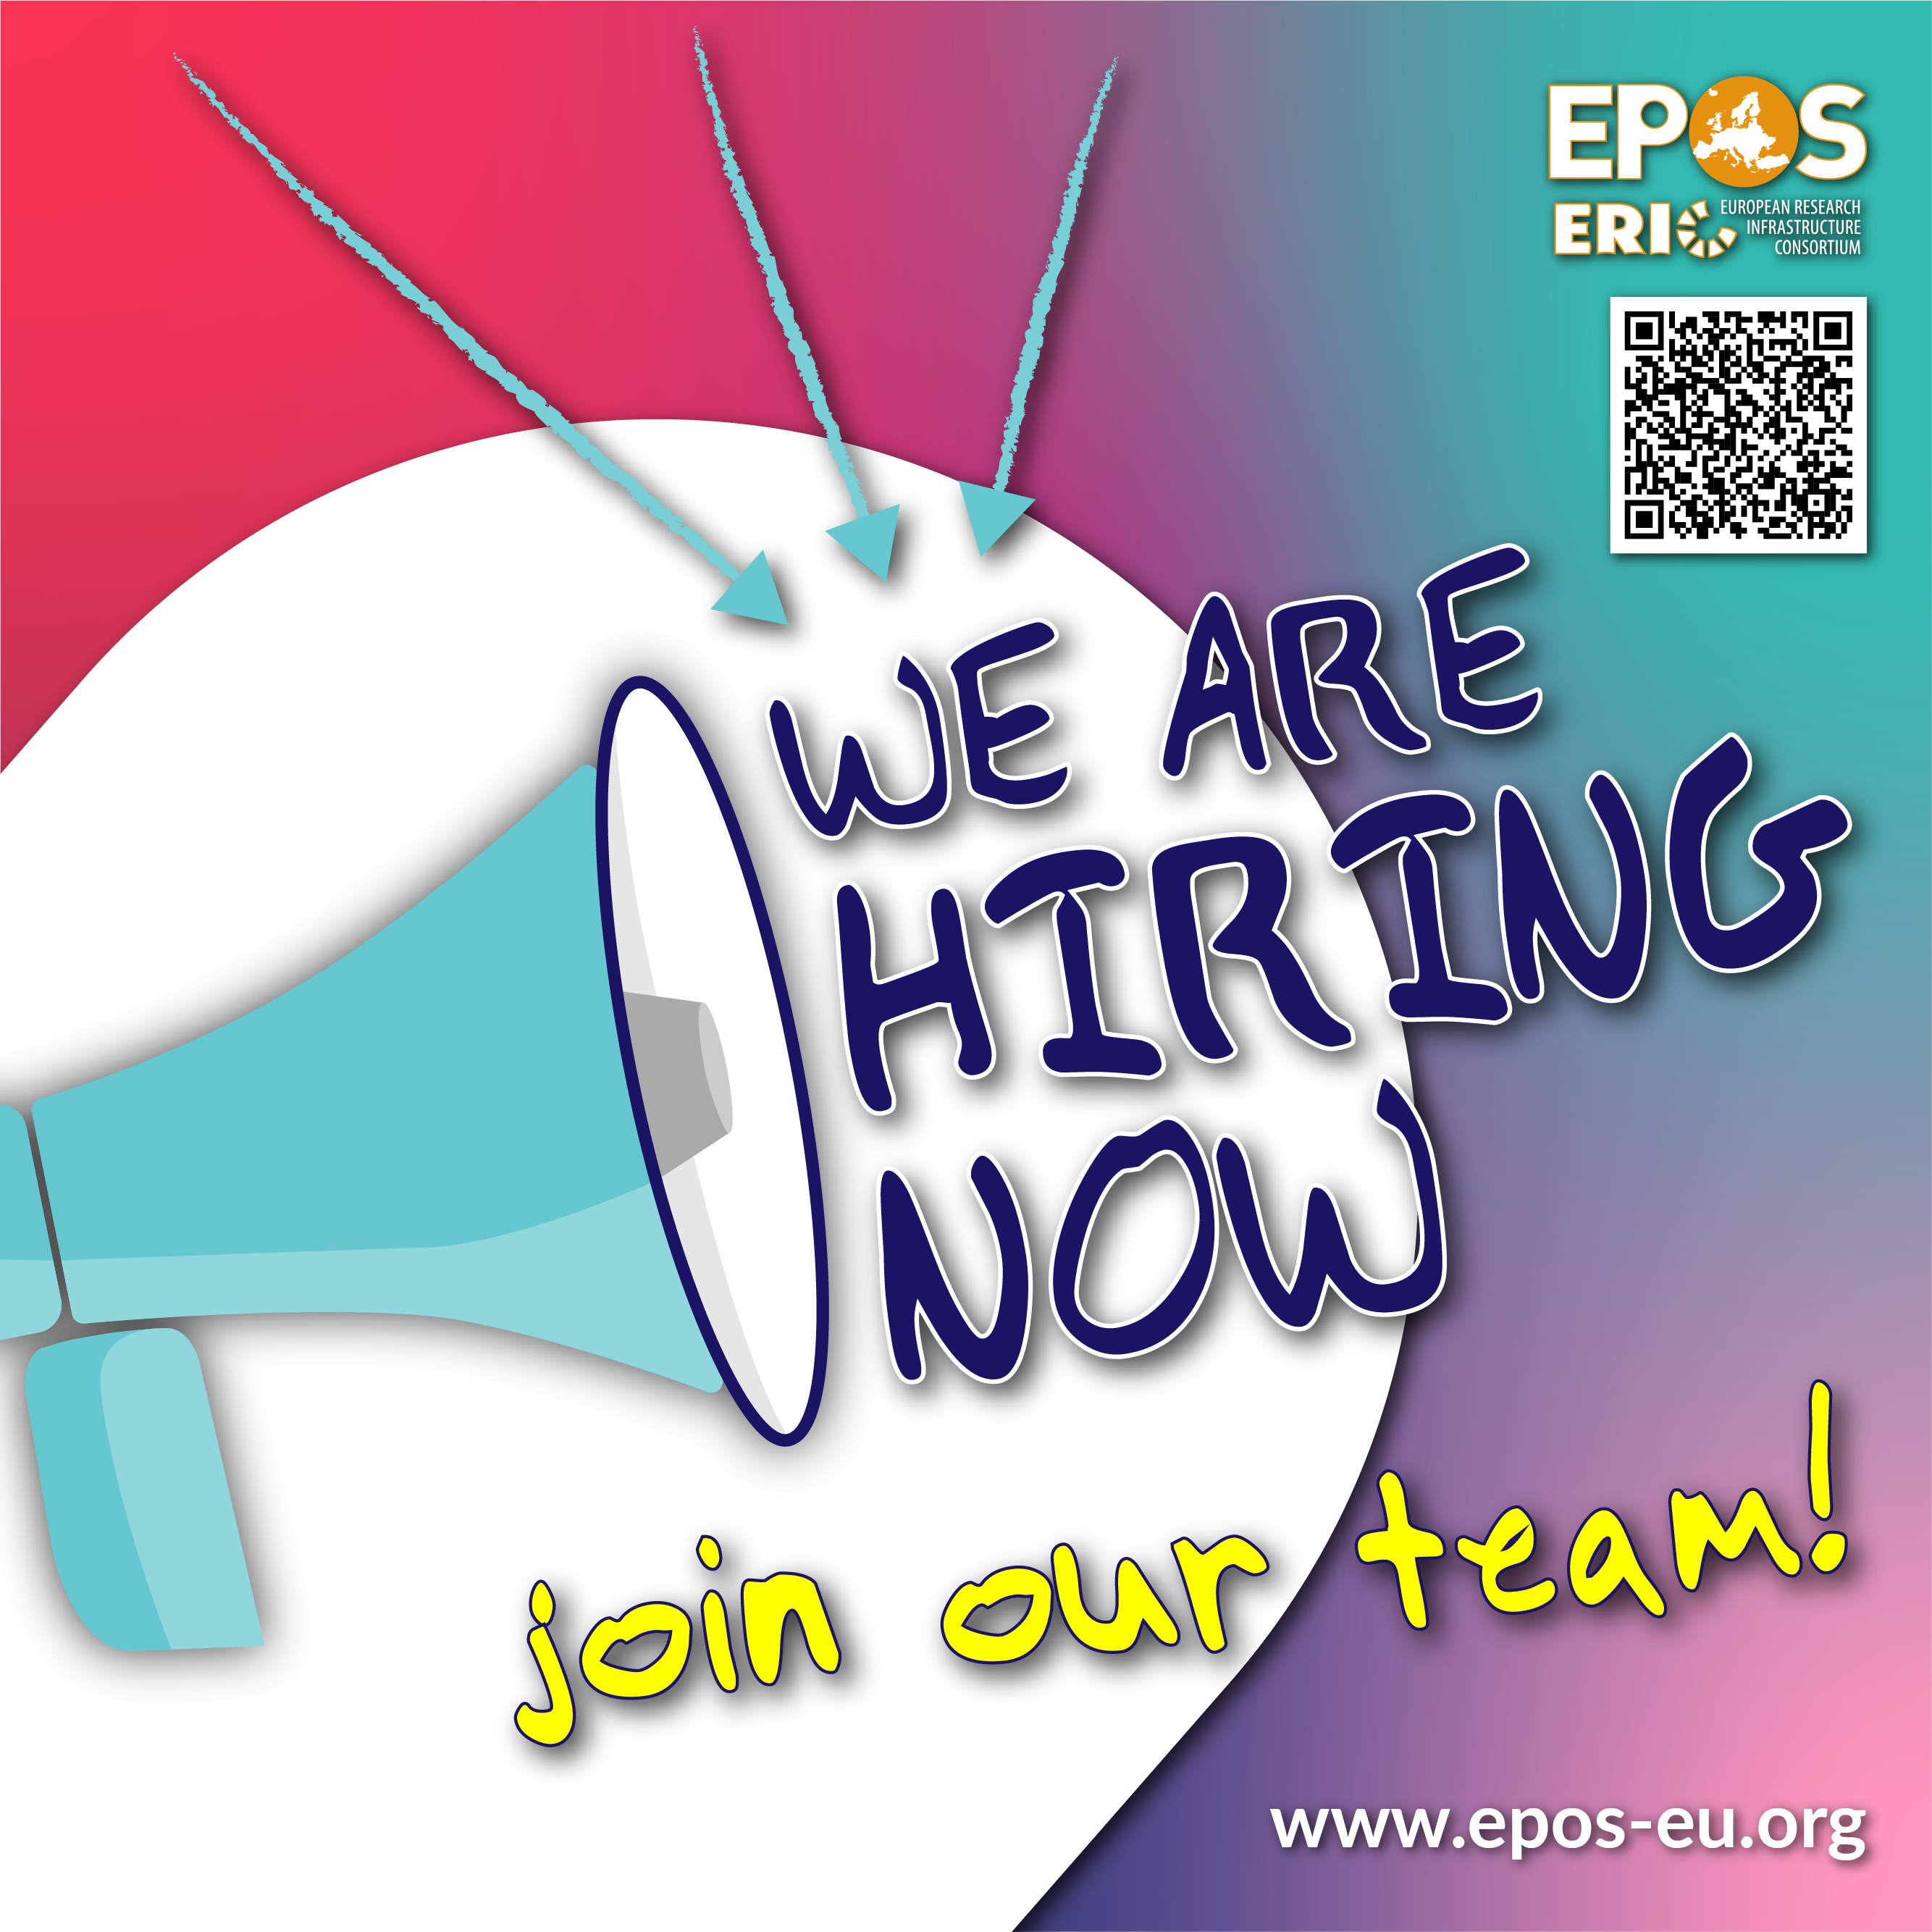 EPOS ERIC job vacancies-2020